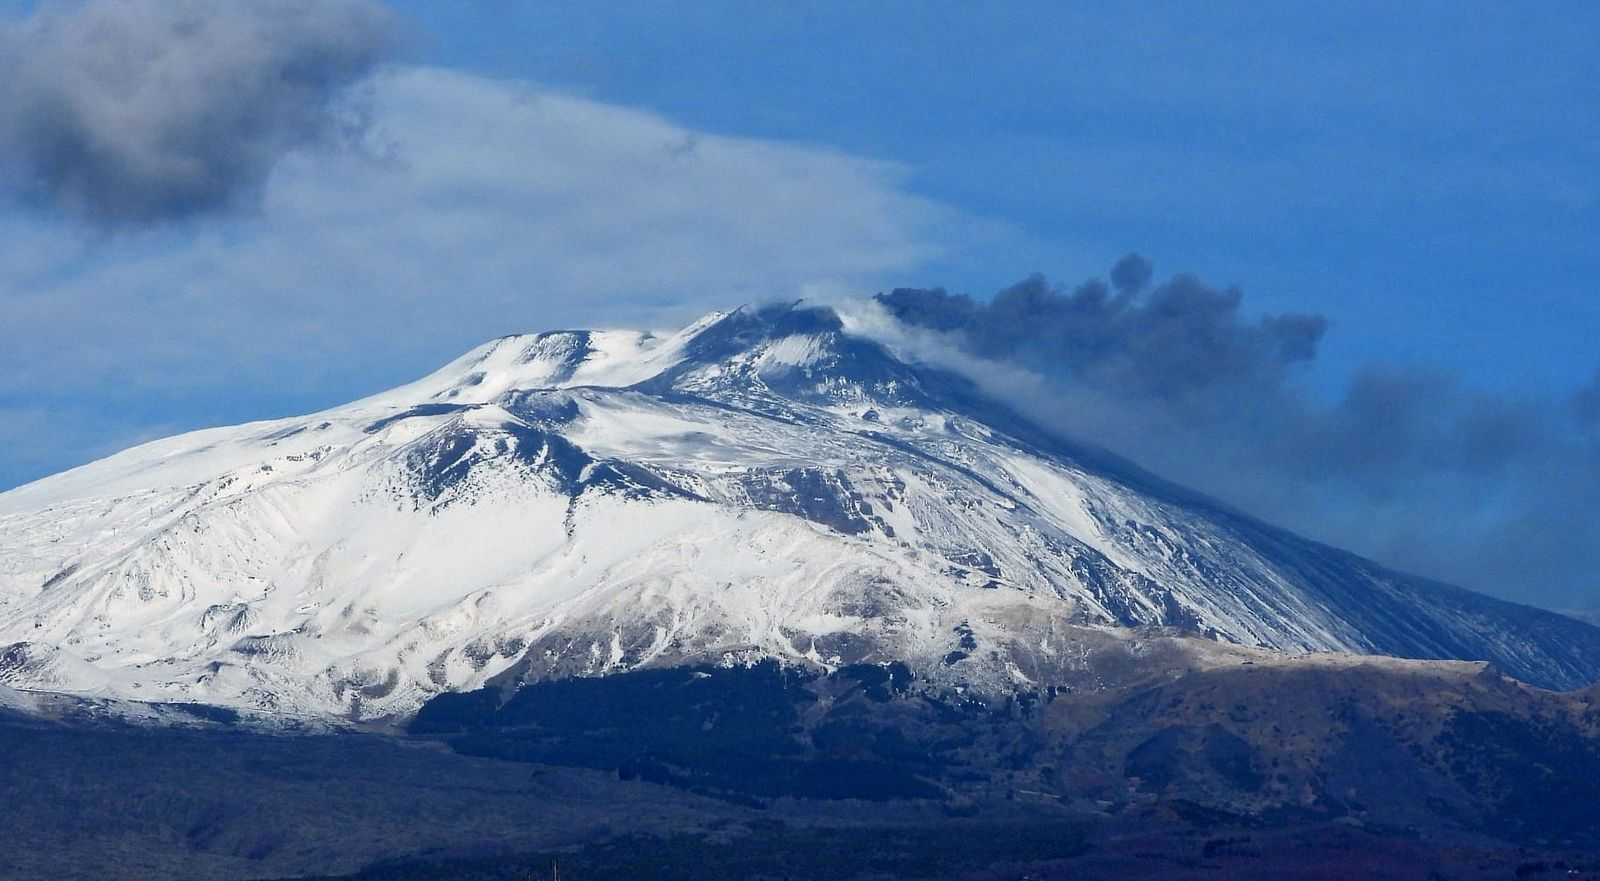 Activity of Santiaguito, Suwanoejima, Langila and Etna.